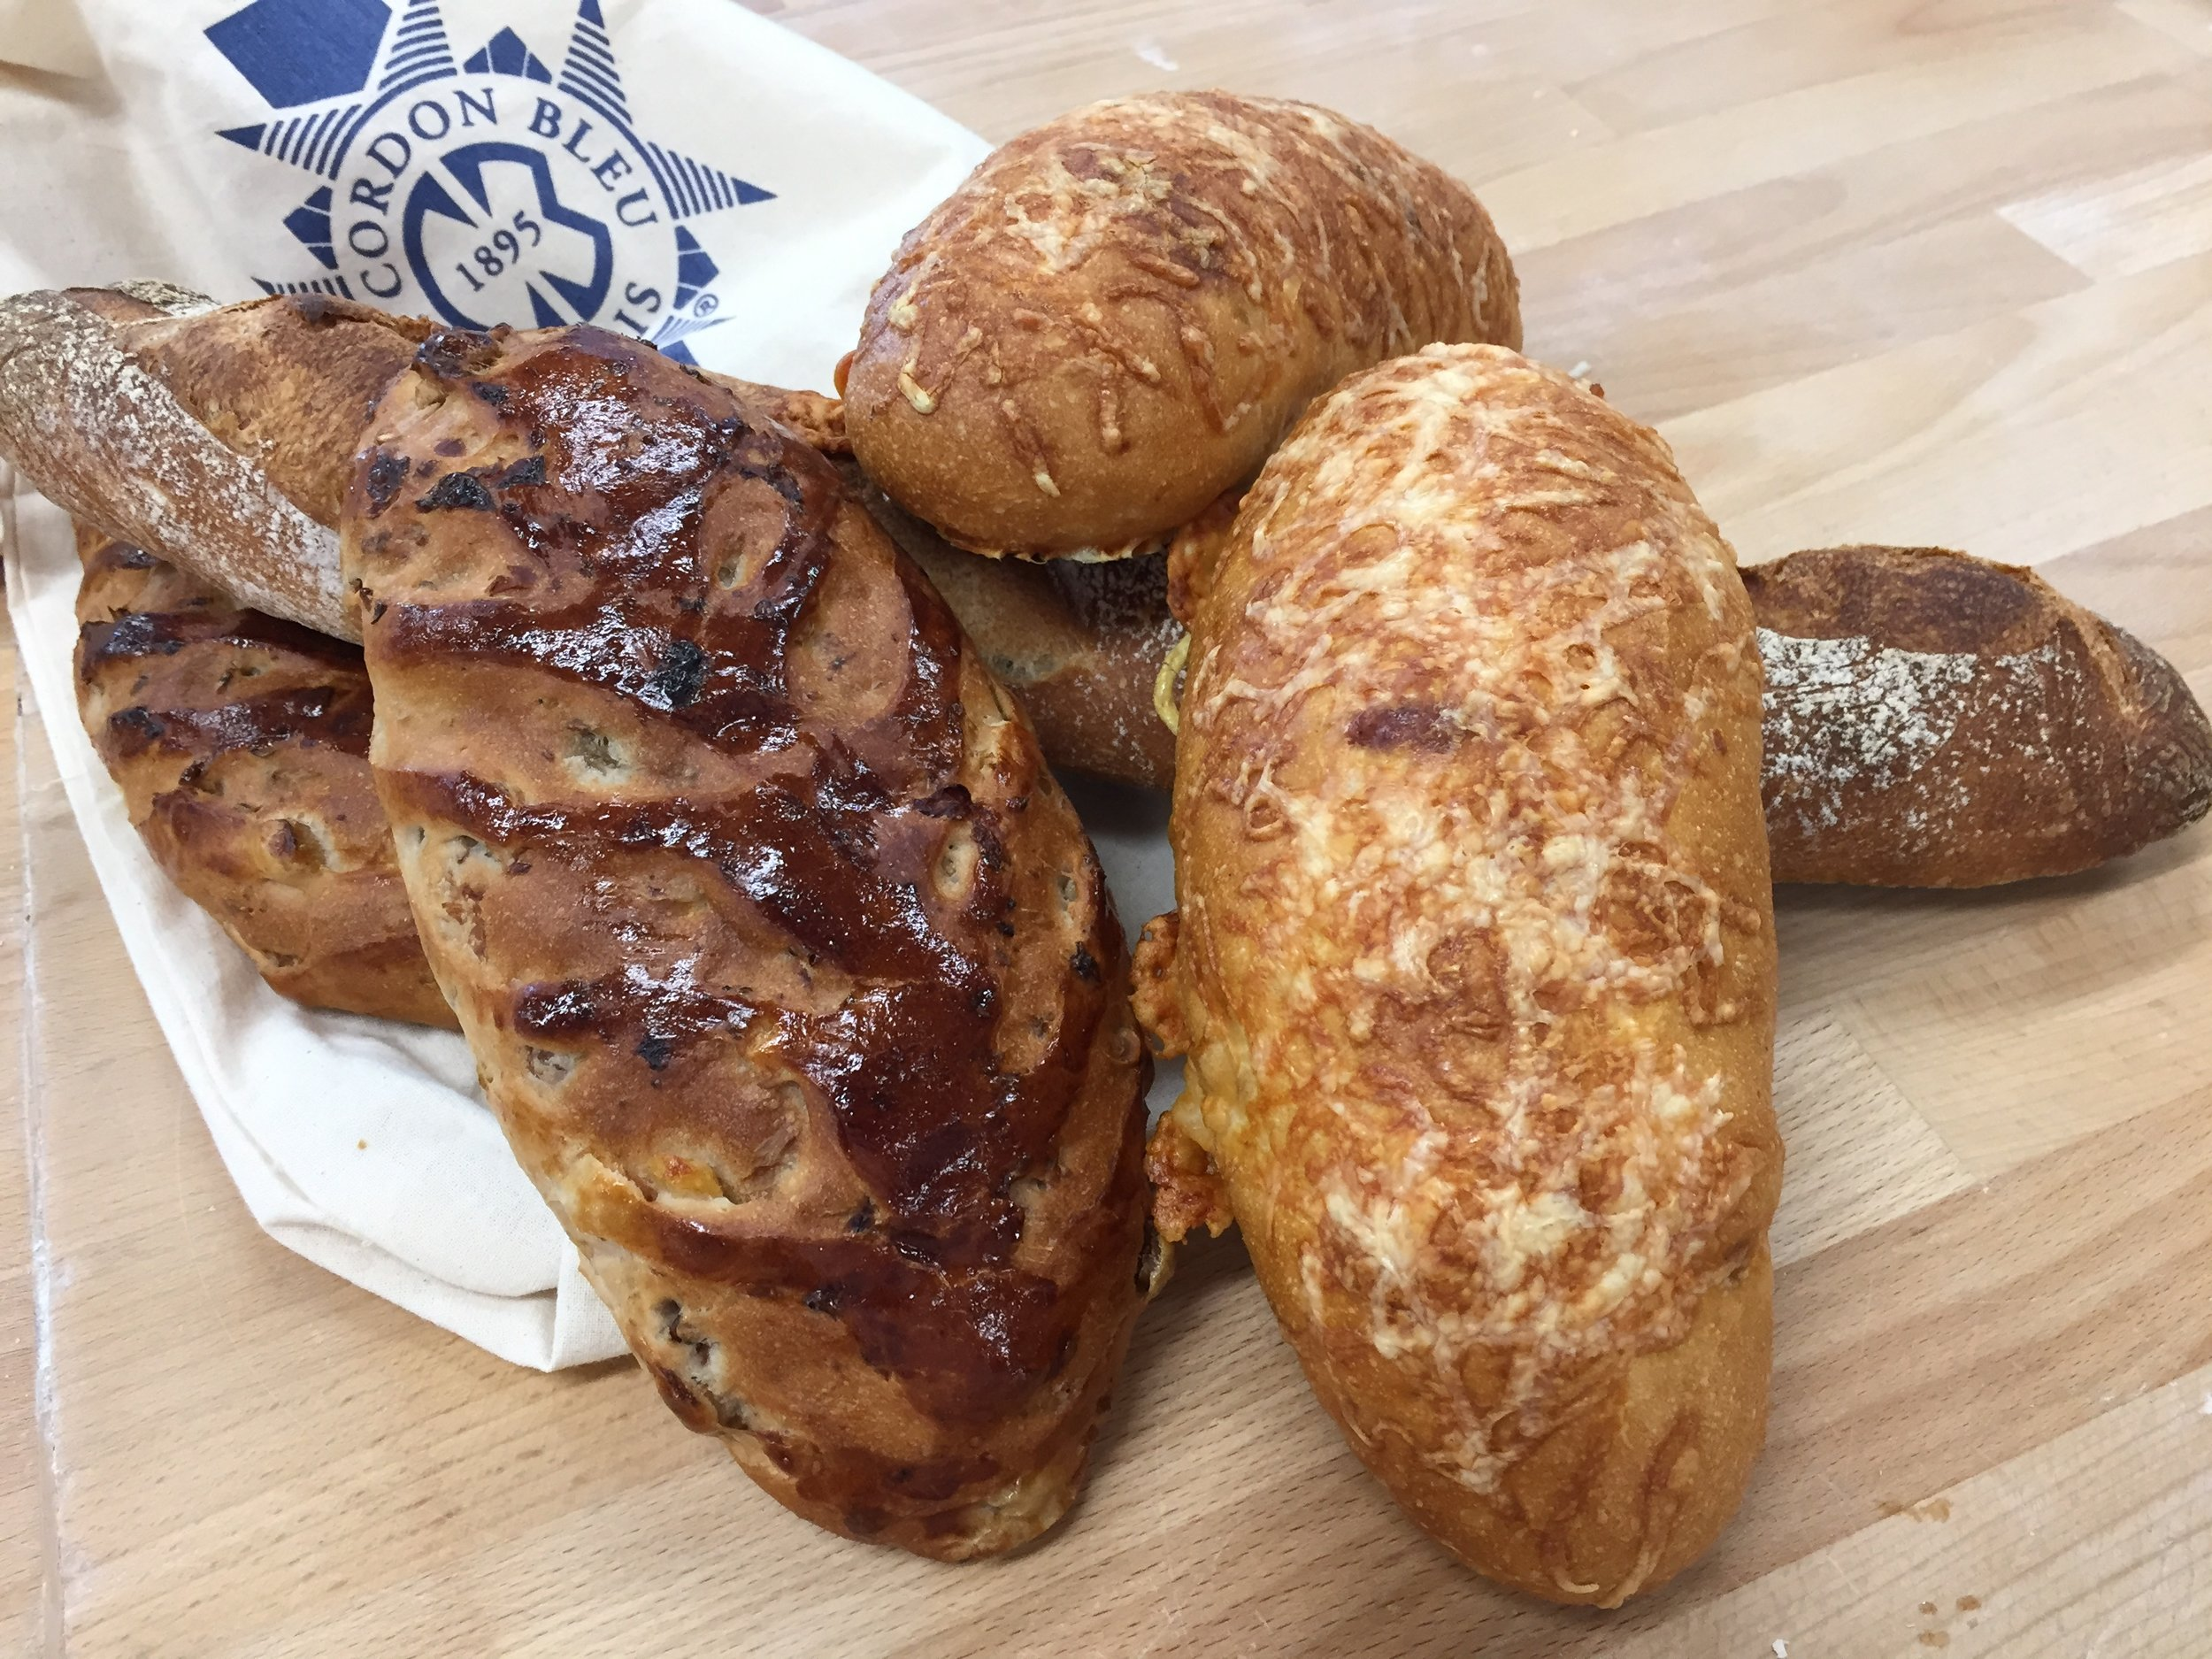 day 3 breads: walnut raisin, cheese, baguette tradition